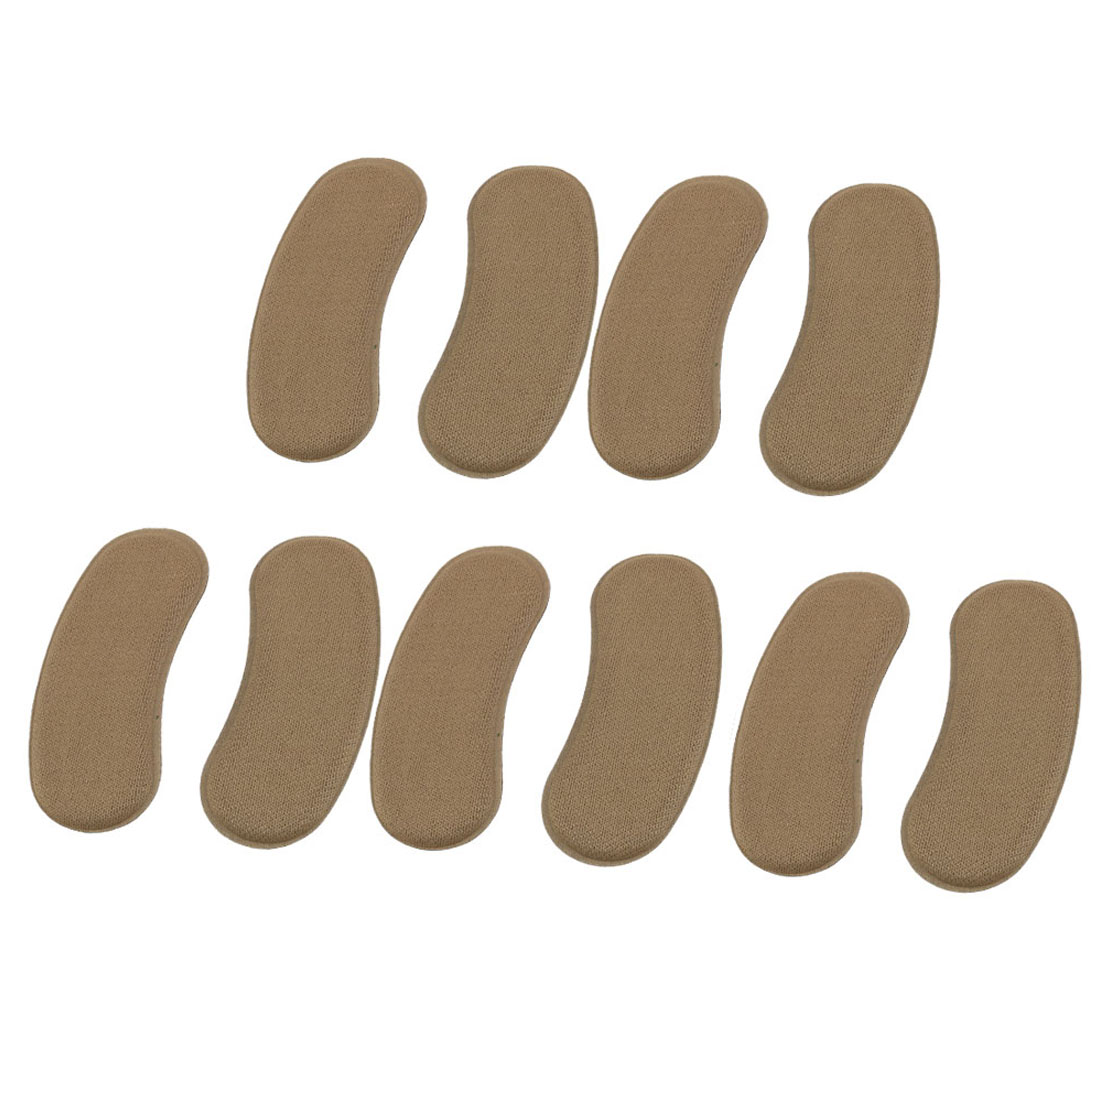 Lady Fabric Protective Self Adhesive Shoes Cushions Insole Back Pads Brown 5 Pairs